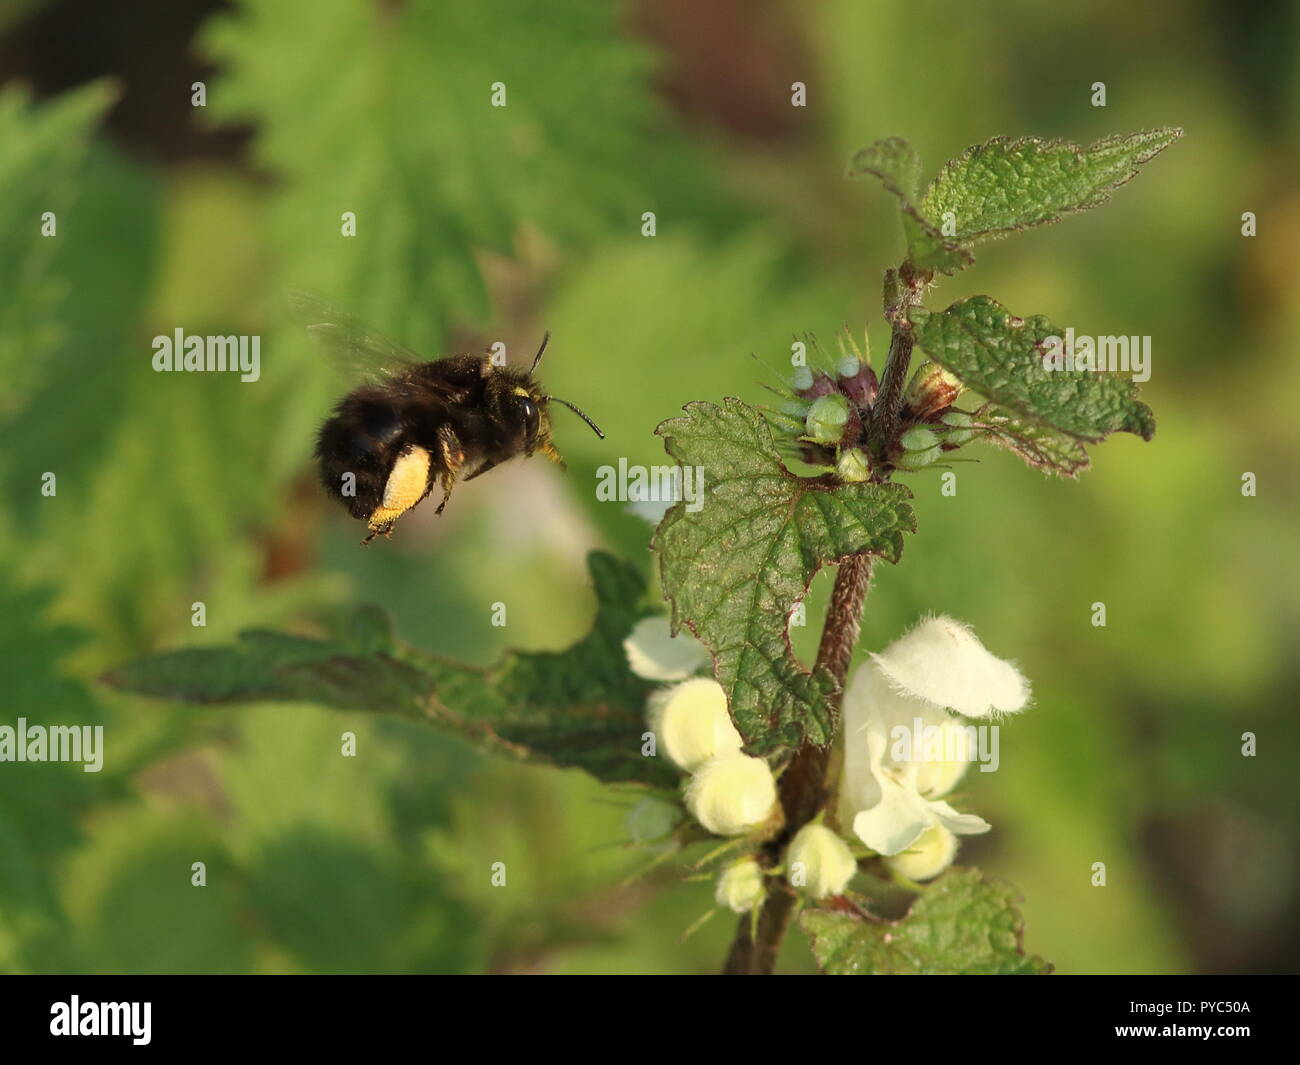 Male Bumblebee collecting Pollen on leg sacks, flying to  Lamium album, White dead nettle flower. Foraging for food - Stock Image